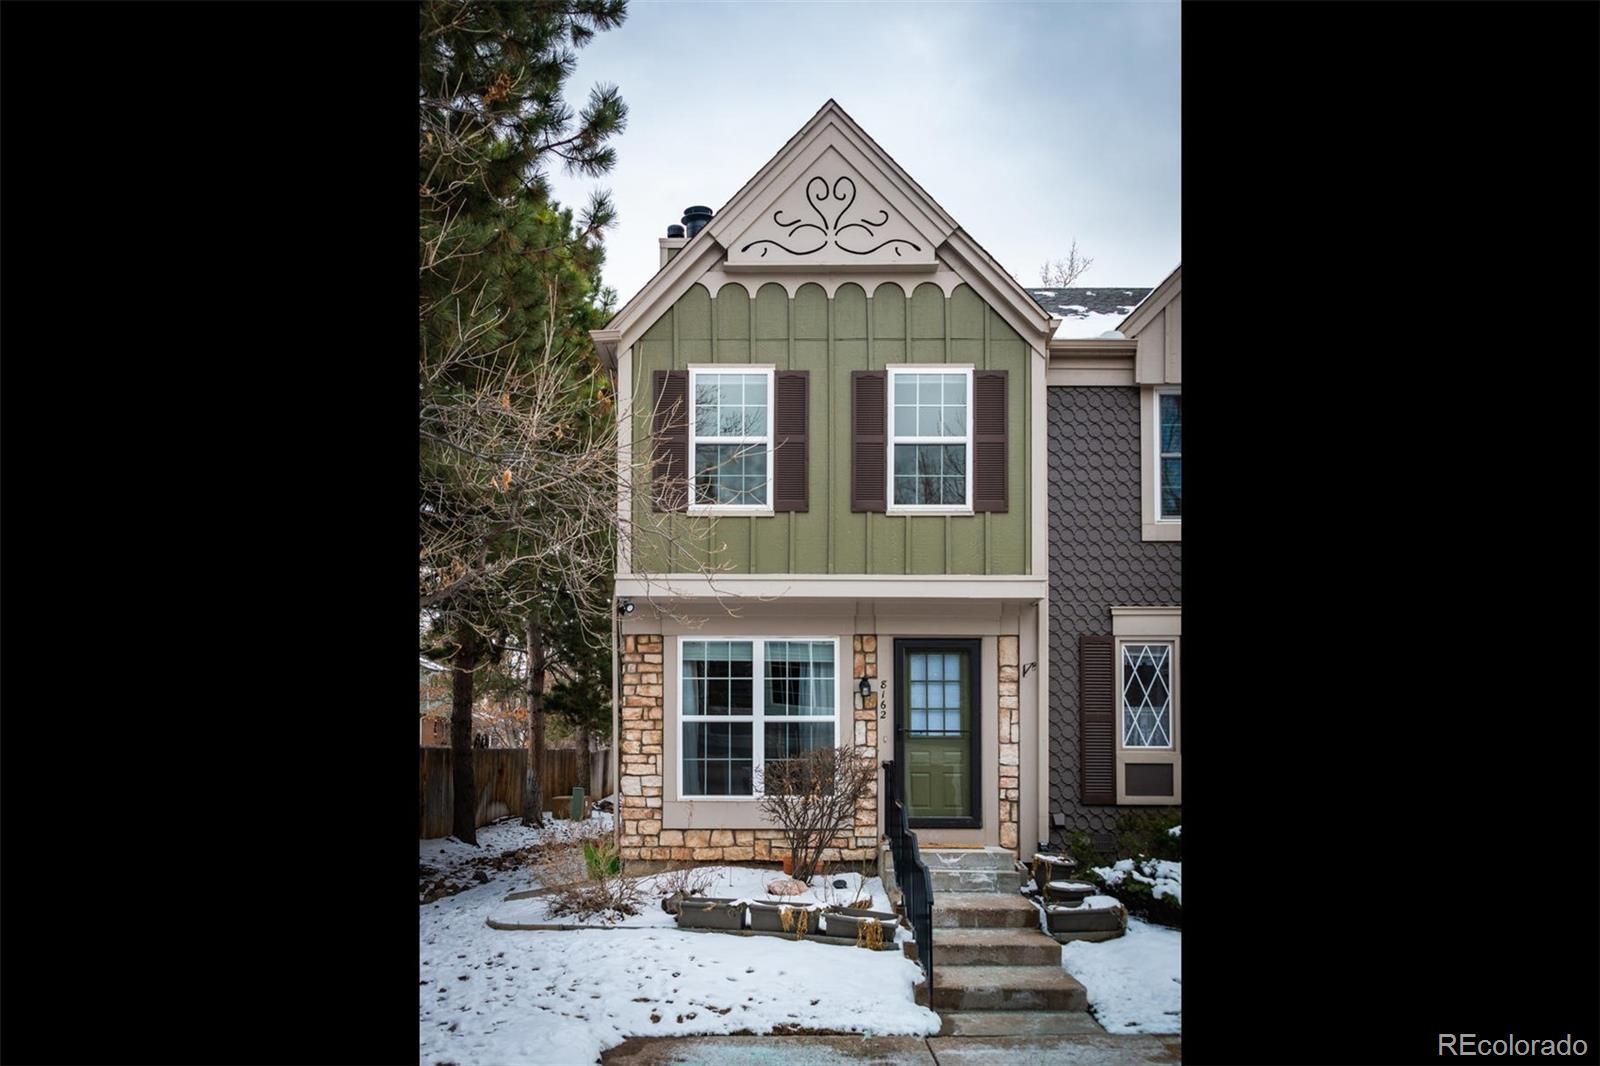 MLS# 9090000 - 25 - 8162 S Fillmore Way, Centennial, CO 80122